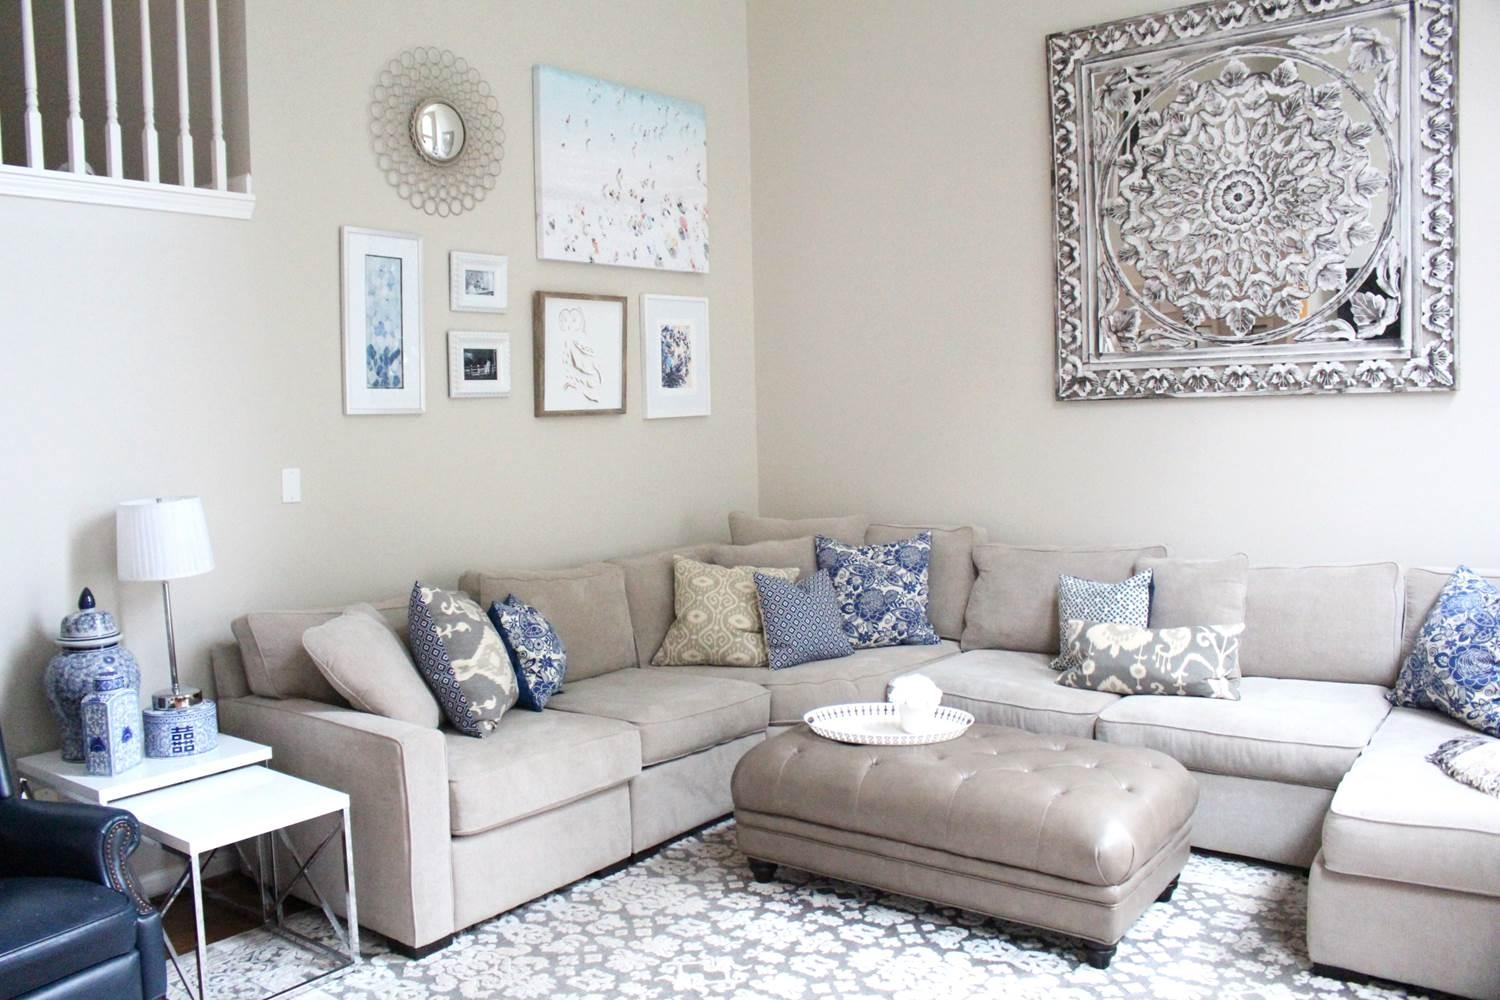 Stunning Art For Living Room Wall Images – Rugoingmyway In Wall Art For Living Room (Image 15 of 20)